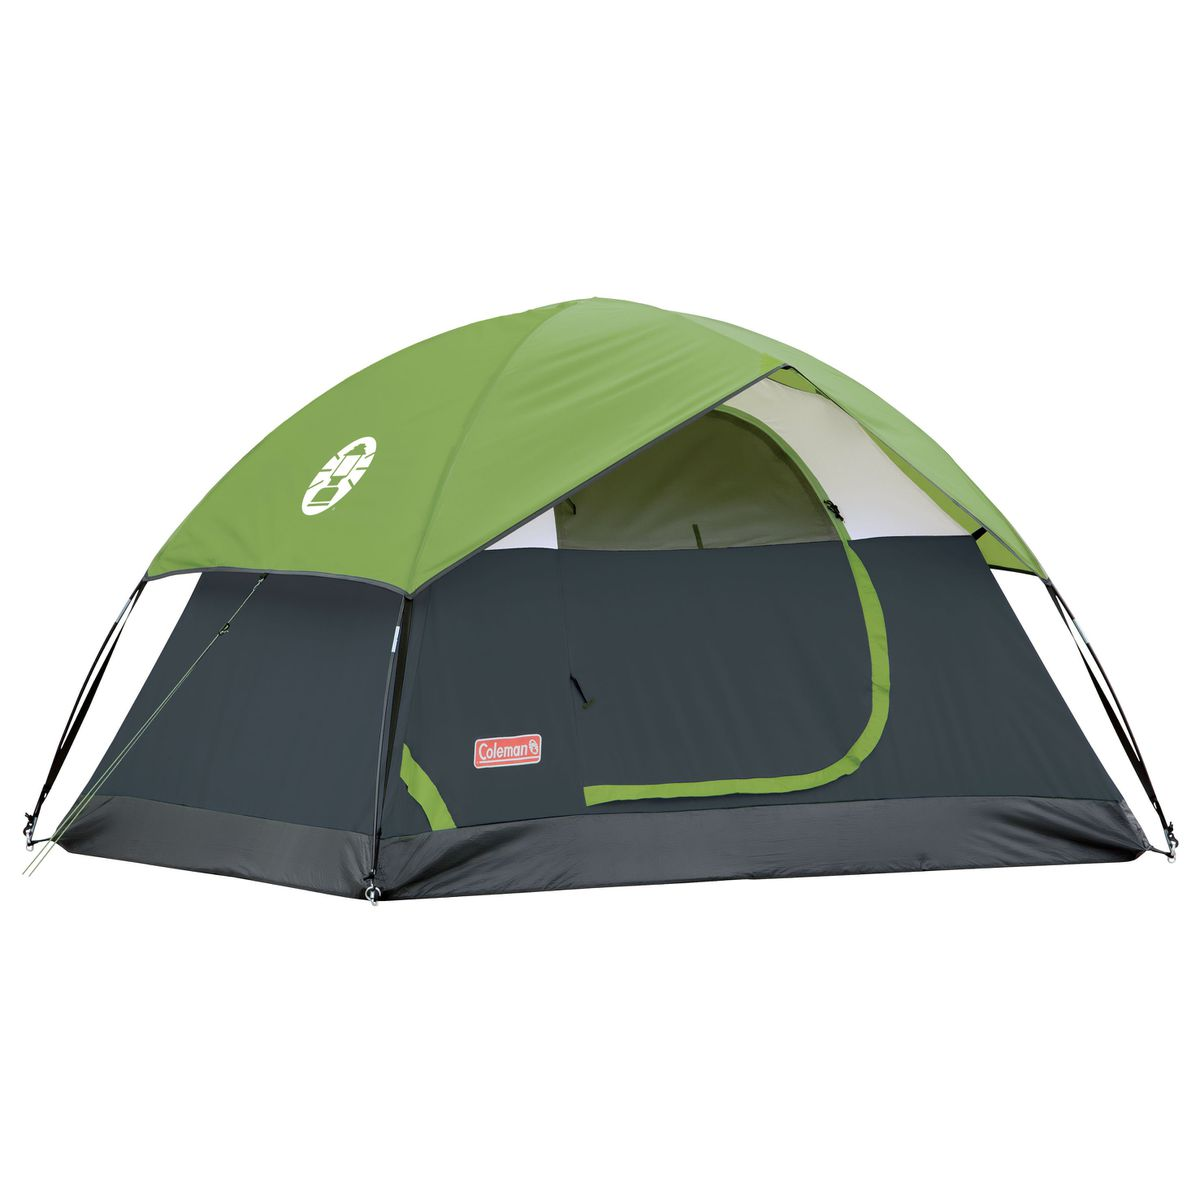 Amazon Com Customer Reviews Coleman Sundome 3 Person